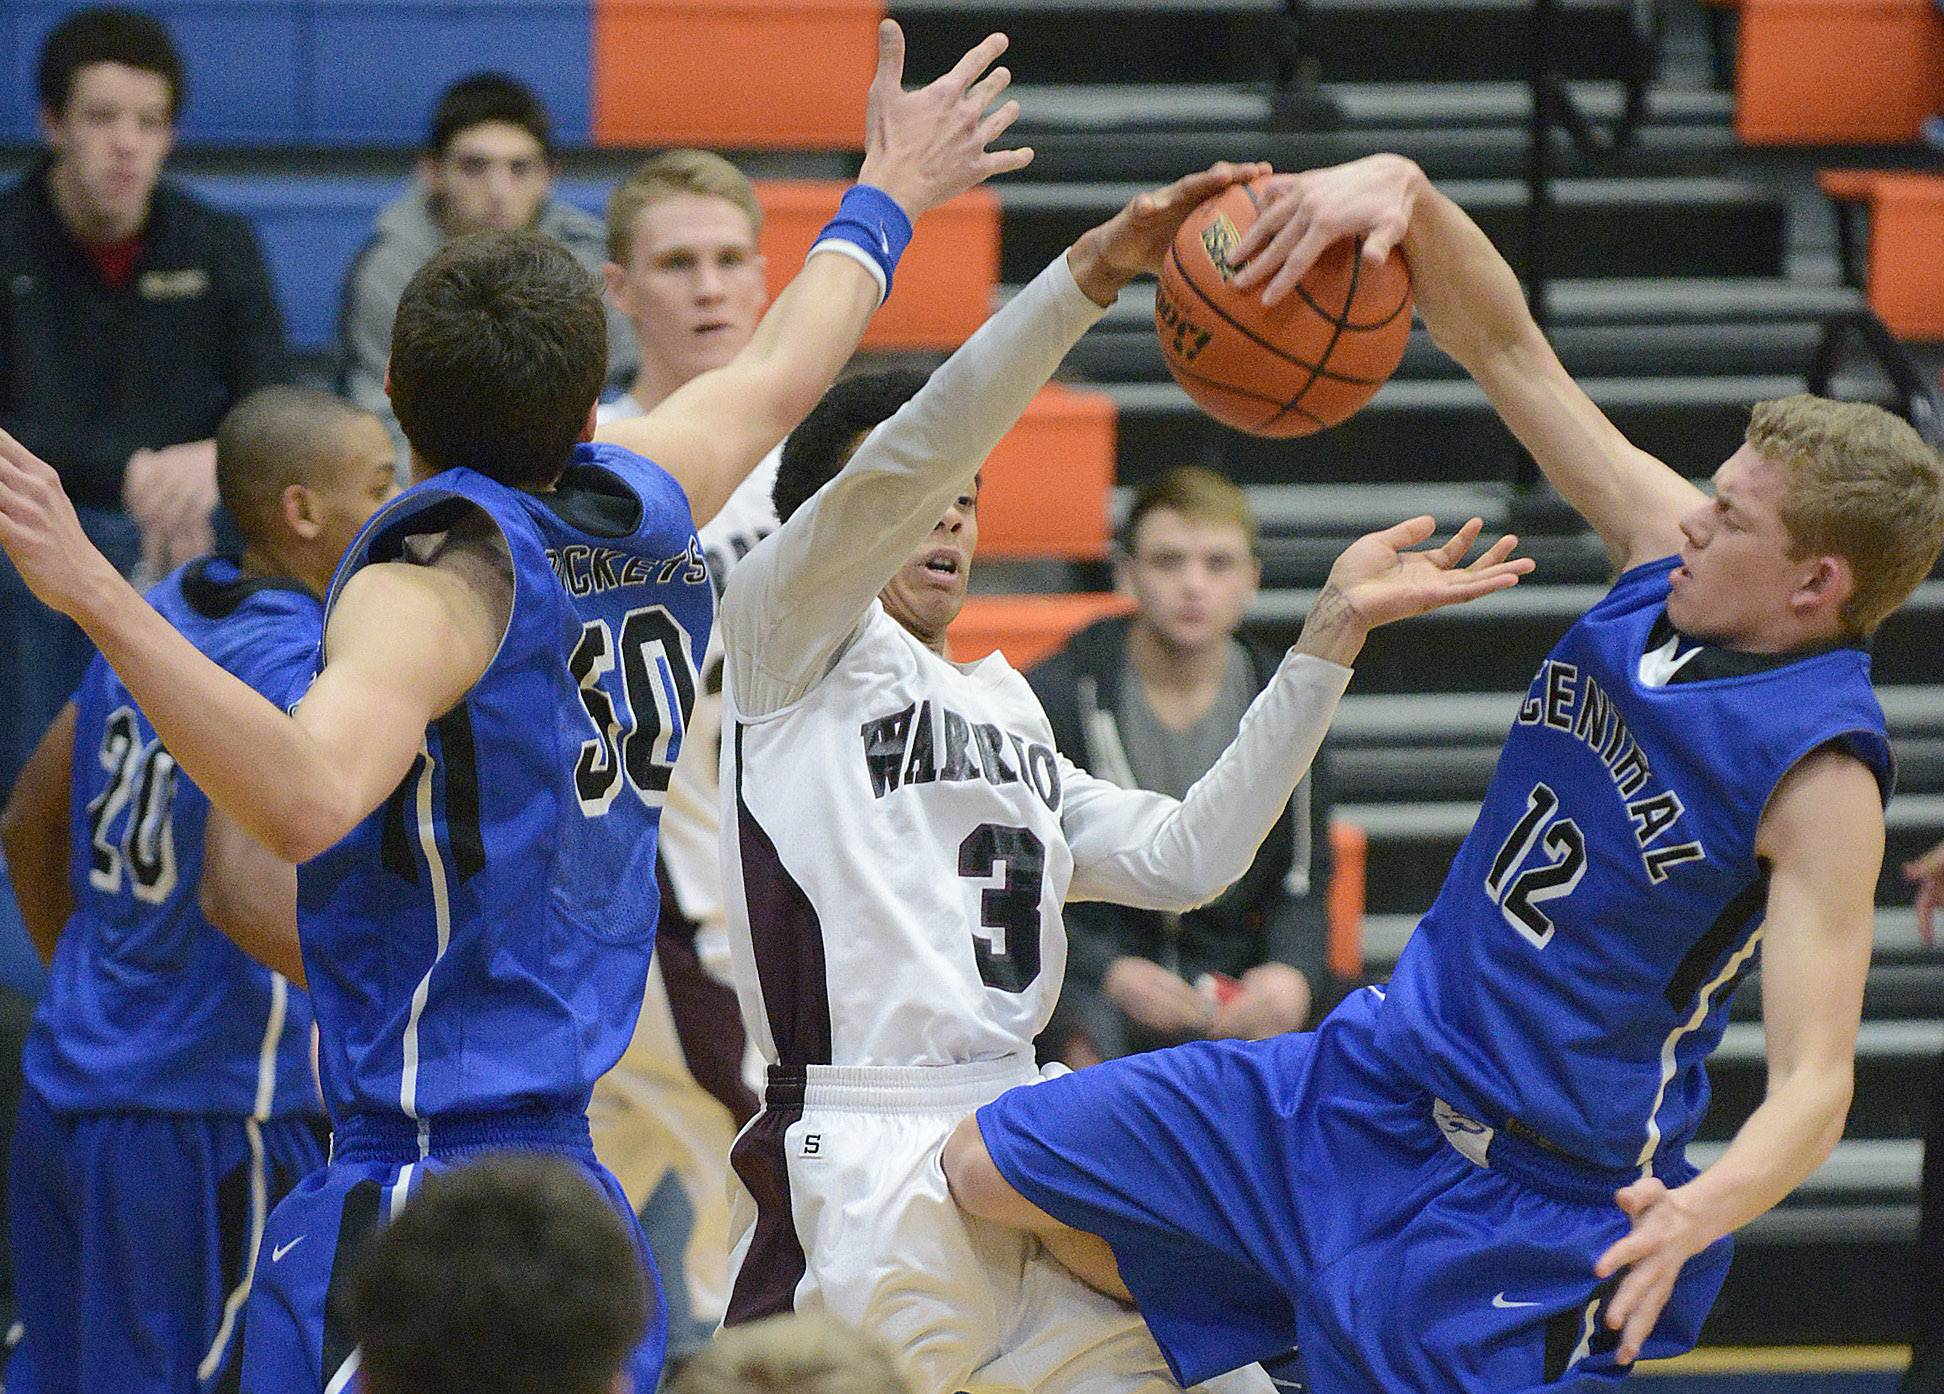 Burlington Central's Stefan Jochum denies Wheaton Academy's Christian Smith a shot in the third quarter of the Class 3A regional at Genoa-Kingston High School in Genoa on Wednesday, March 5.